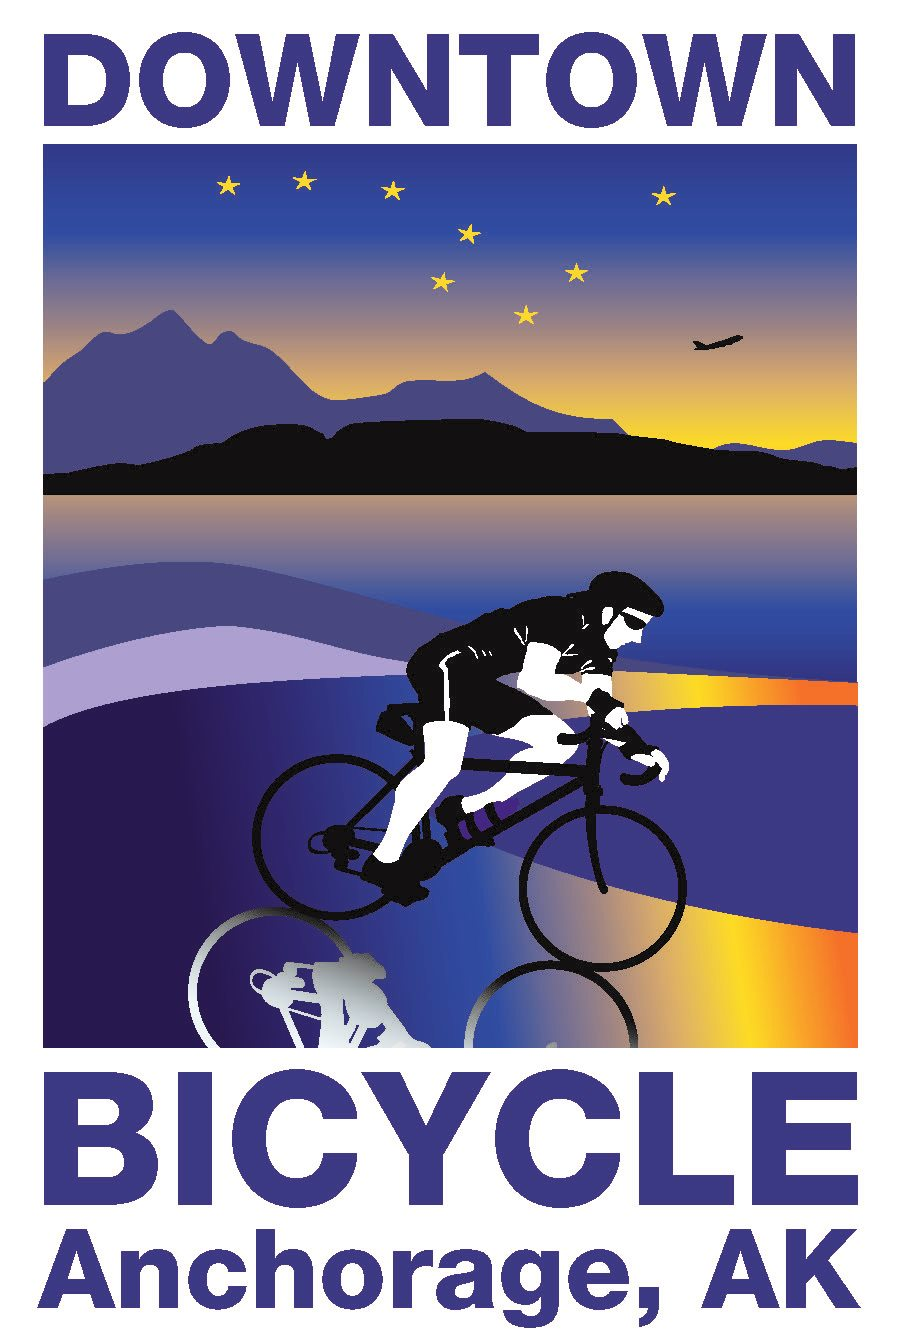 DBR_-_Bicycle_Label_11-3-17.jpg